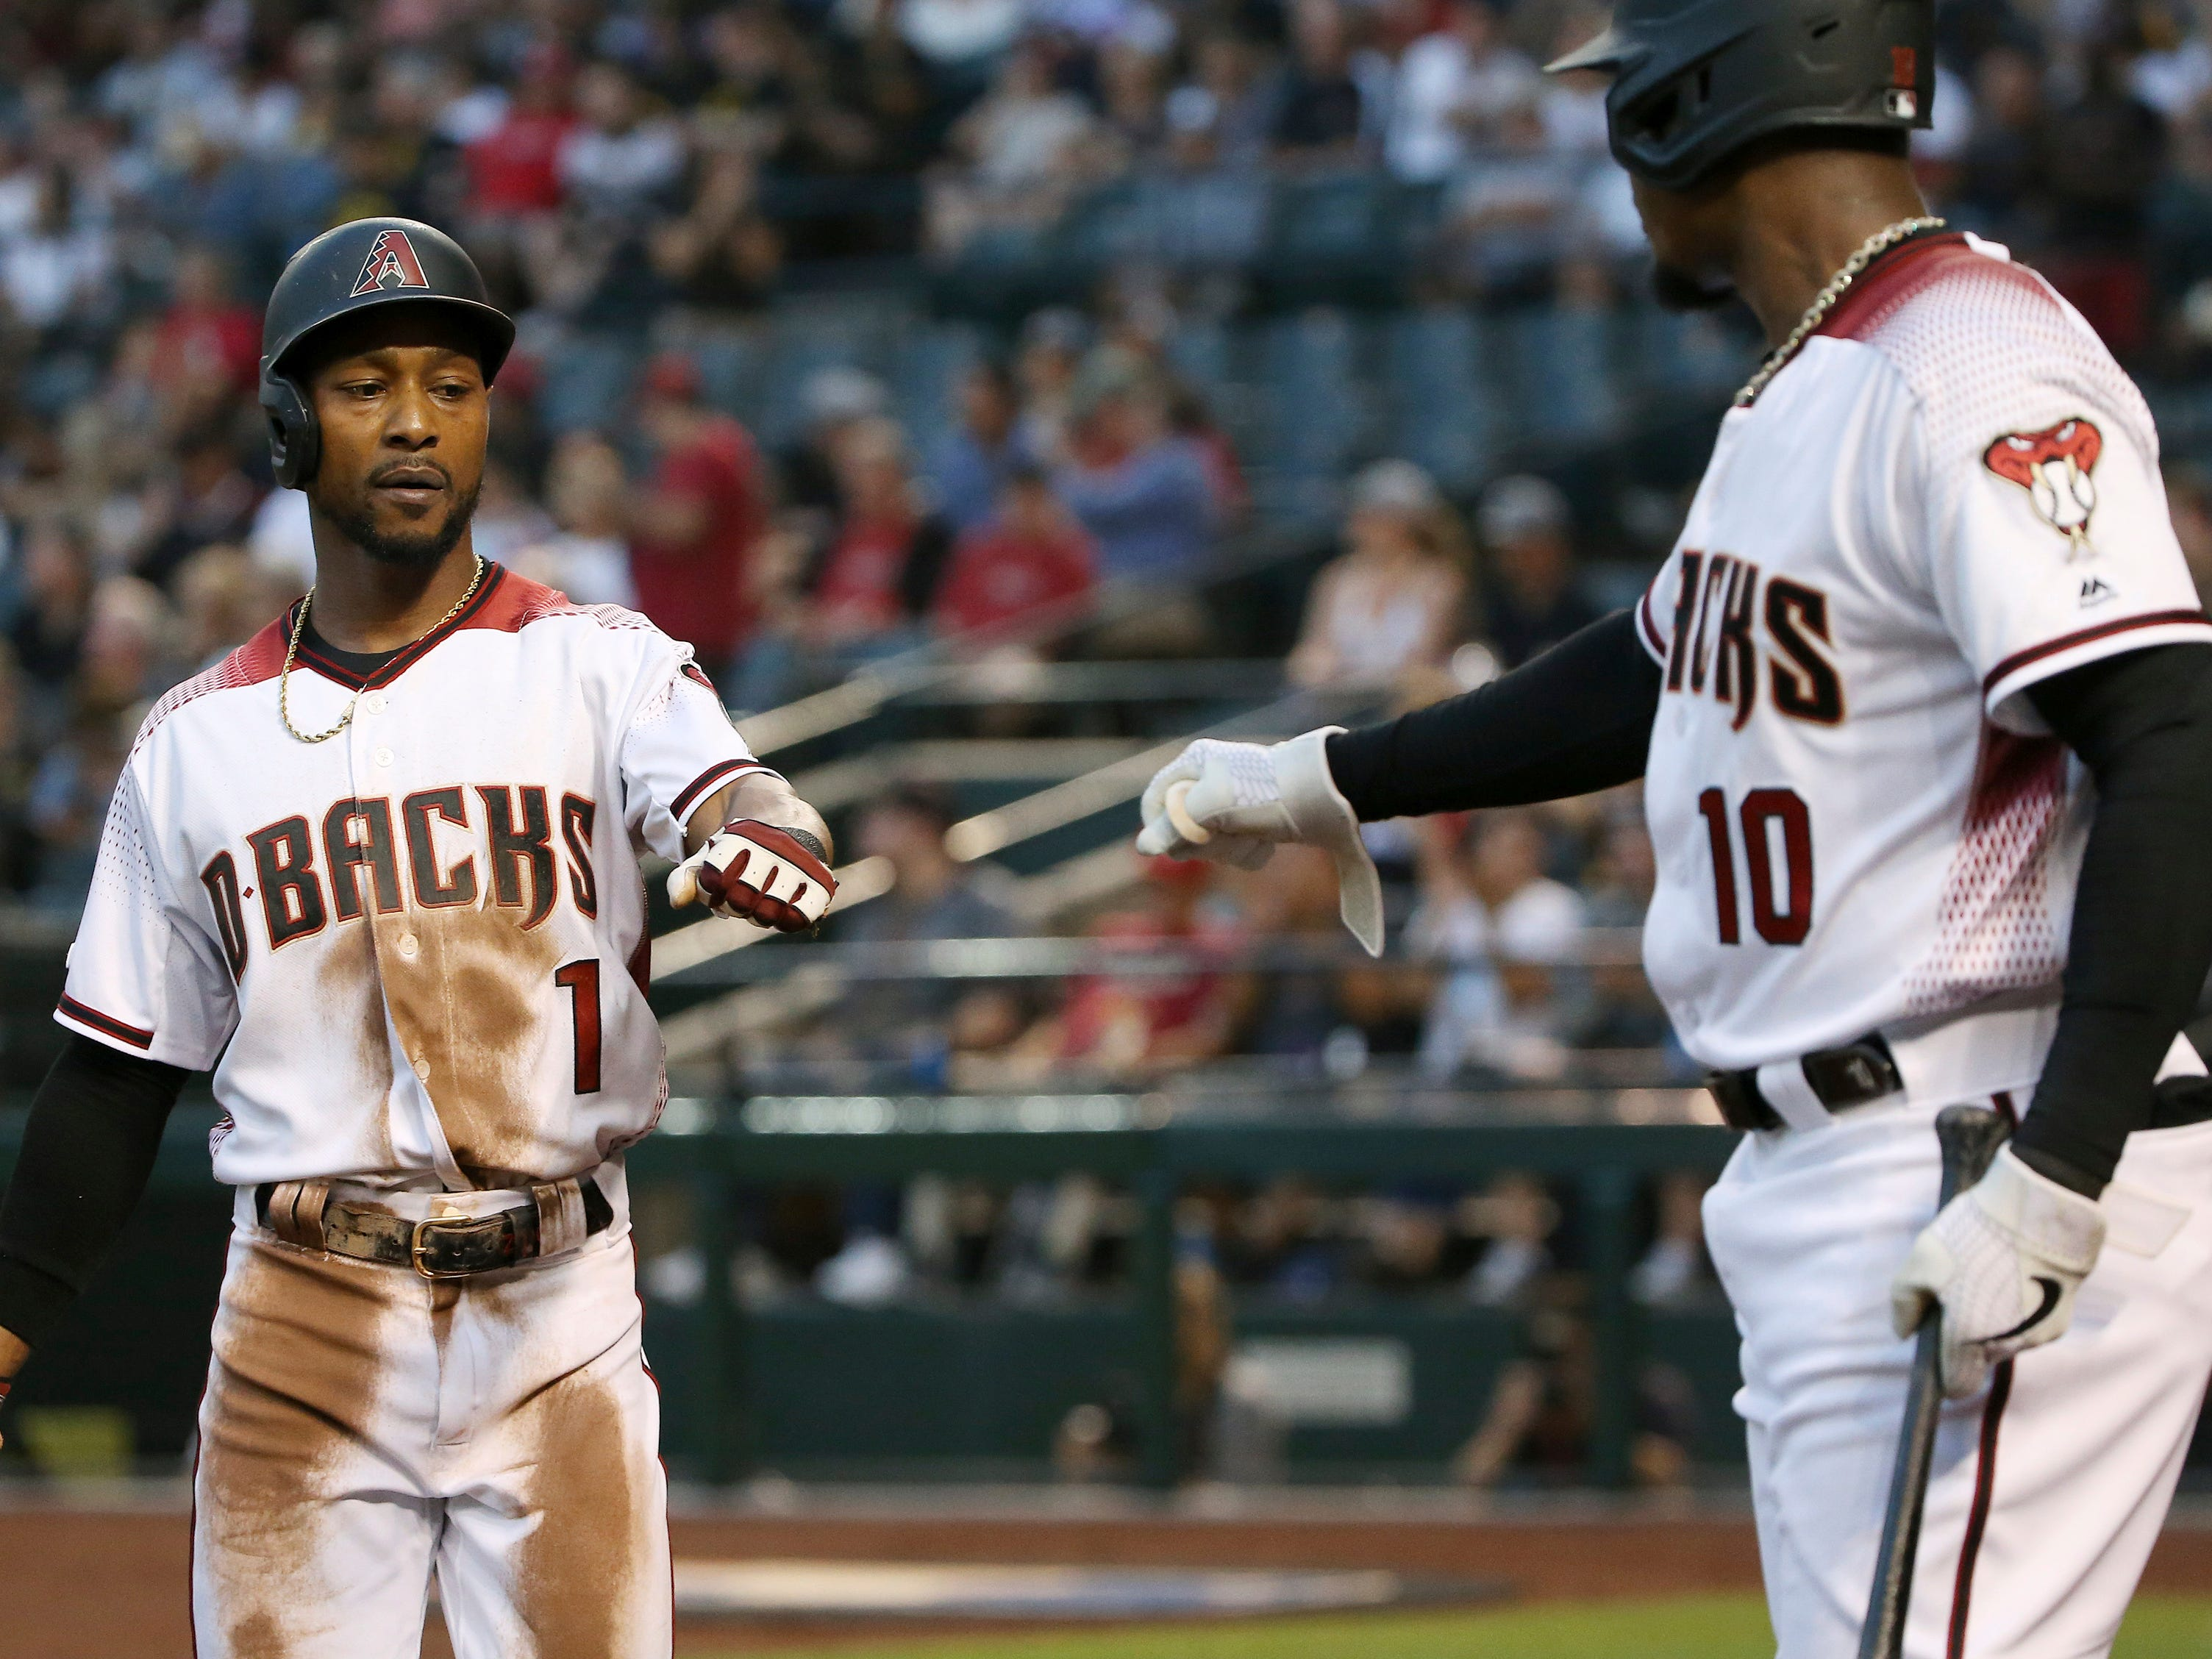 Arizona Diamondbacks' Jarrod Dyson (1) celebrates with teammate Adam Jones (10) after scoring a run against the Pittsburgh Pirates during the first inning of a baseball game Monday, May 13, 2019, in Phoenix.